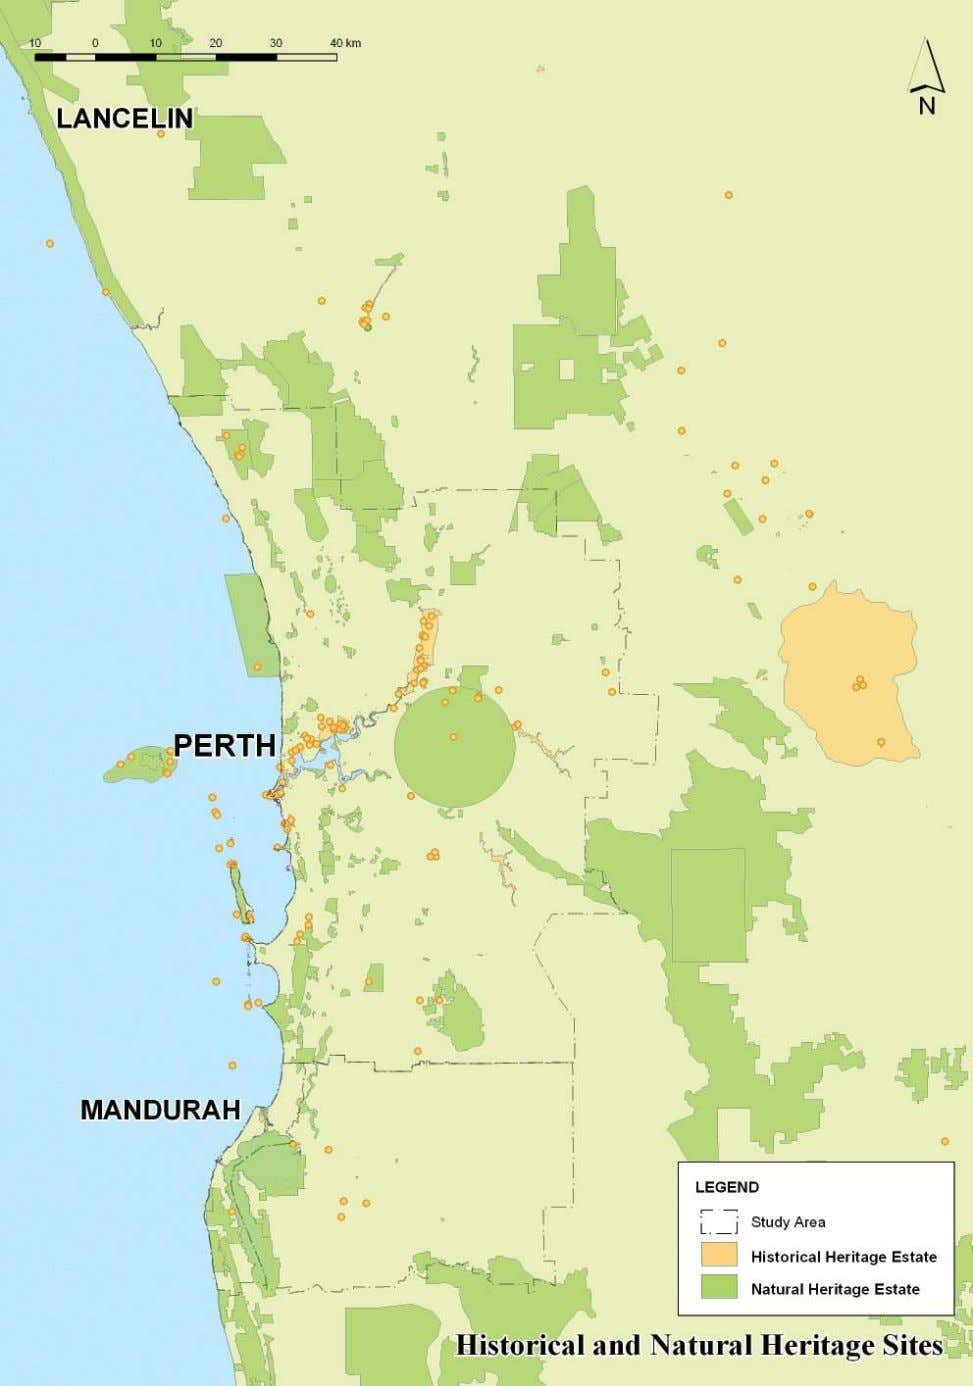 HISTORICAL AND NATURAL HERITAGE SITES IN THE PERTH - MANDURAH REGION 34